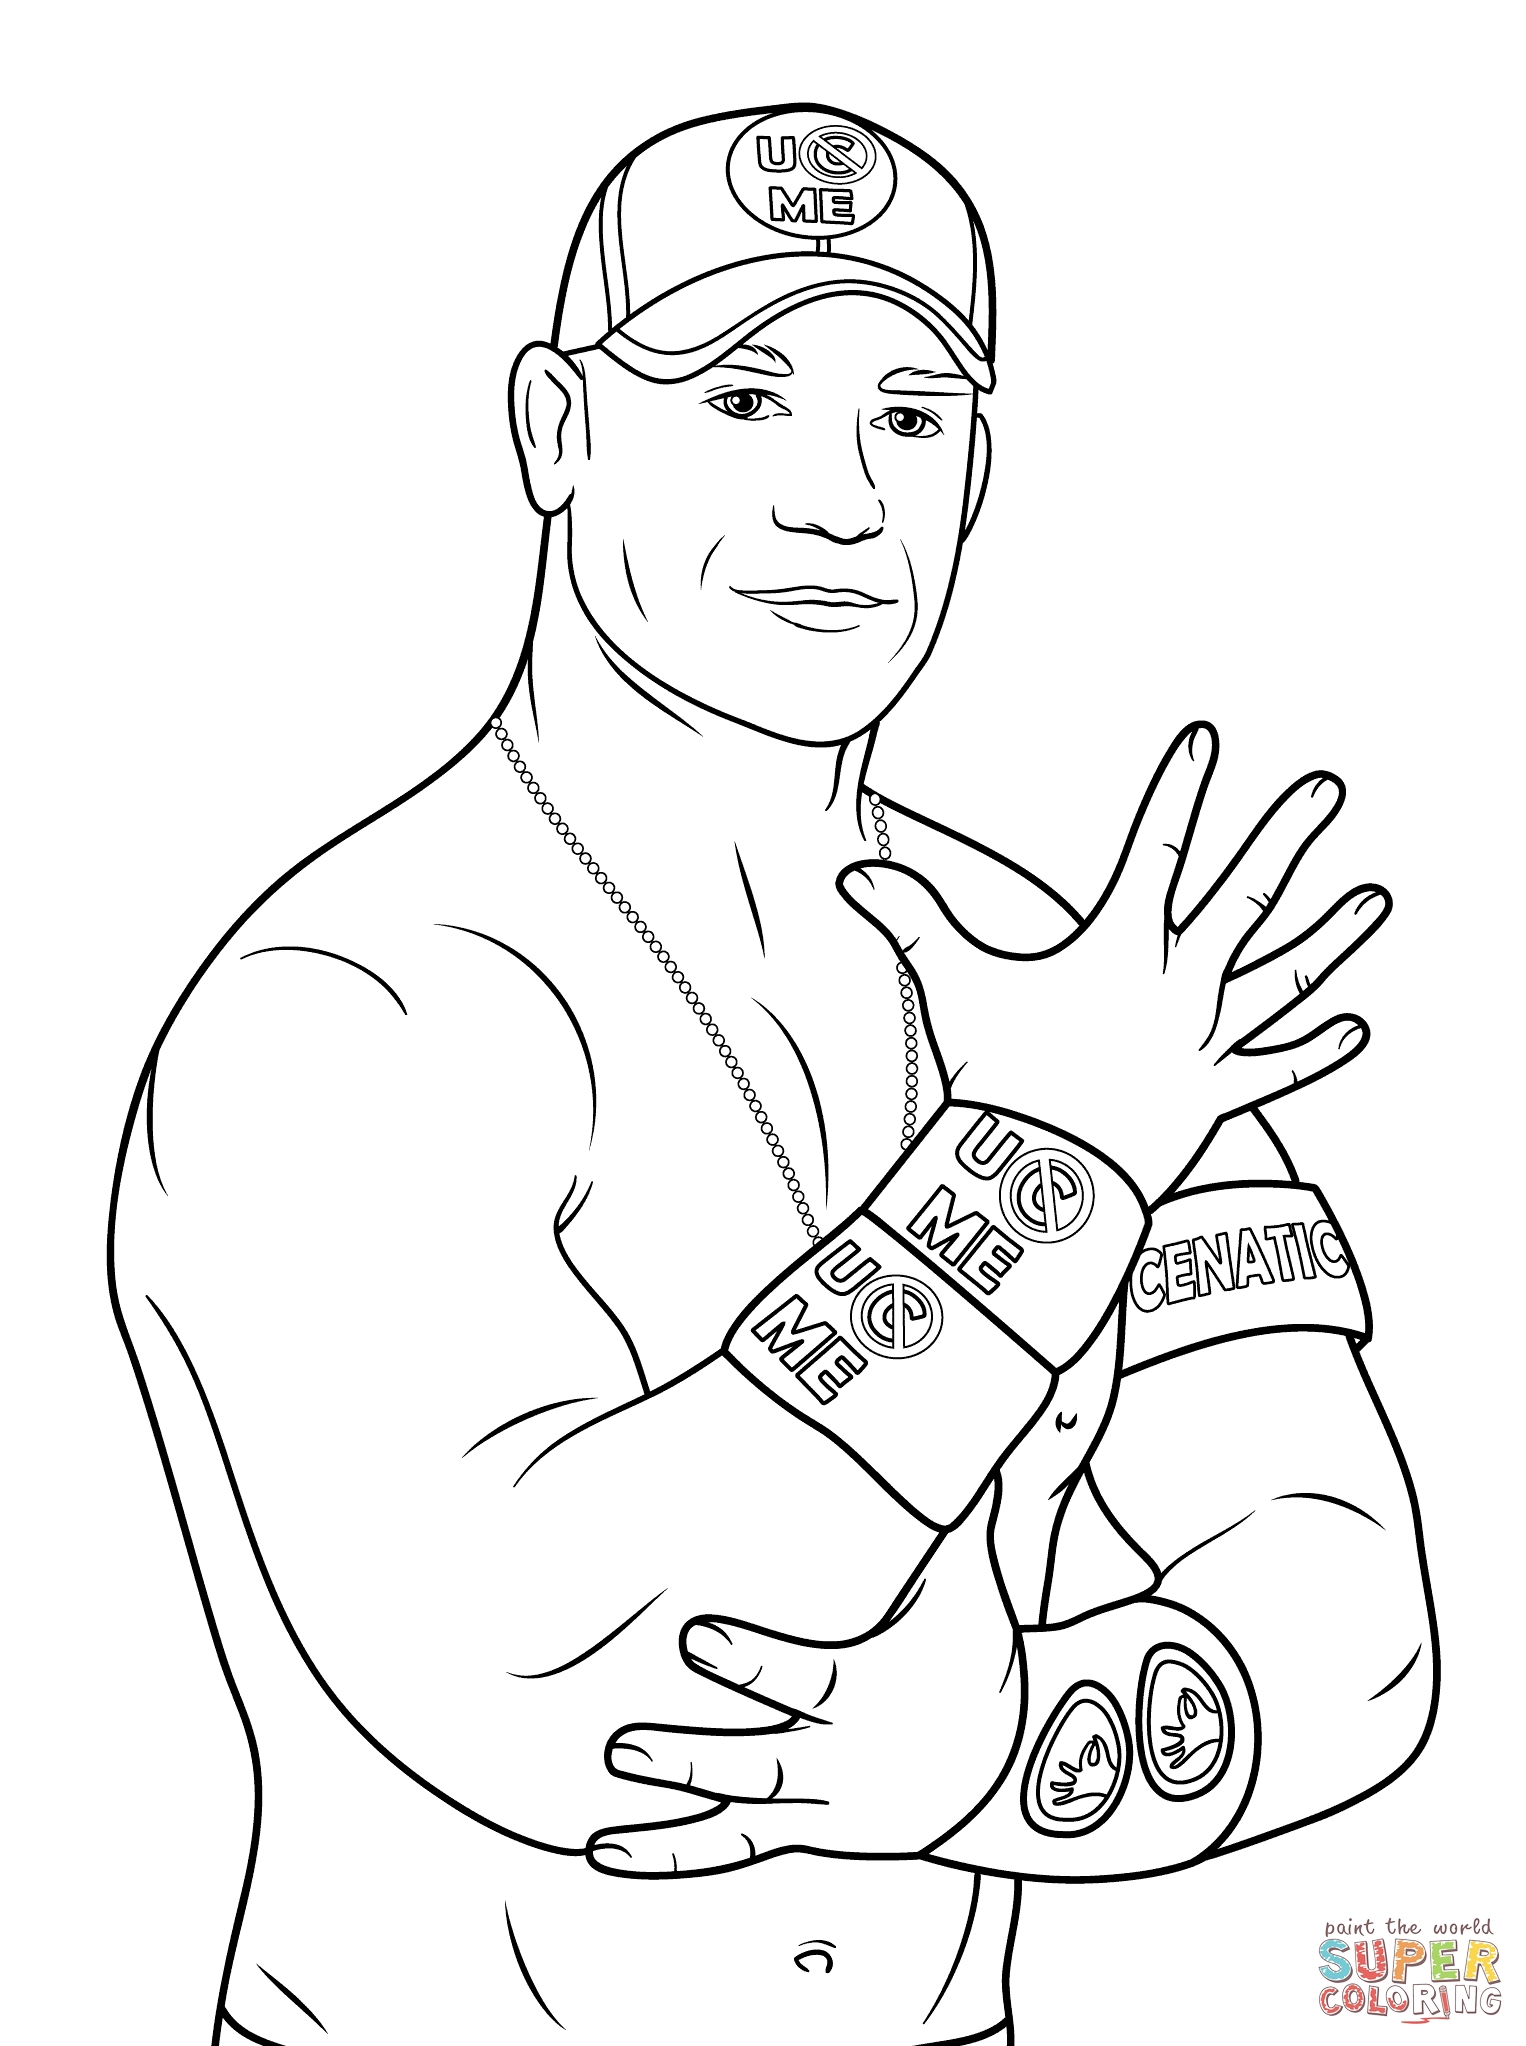 john cena coloring pages - john cena